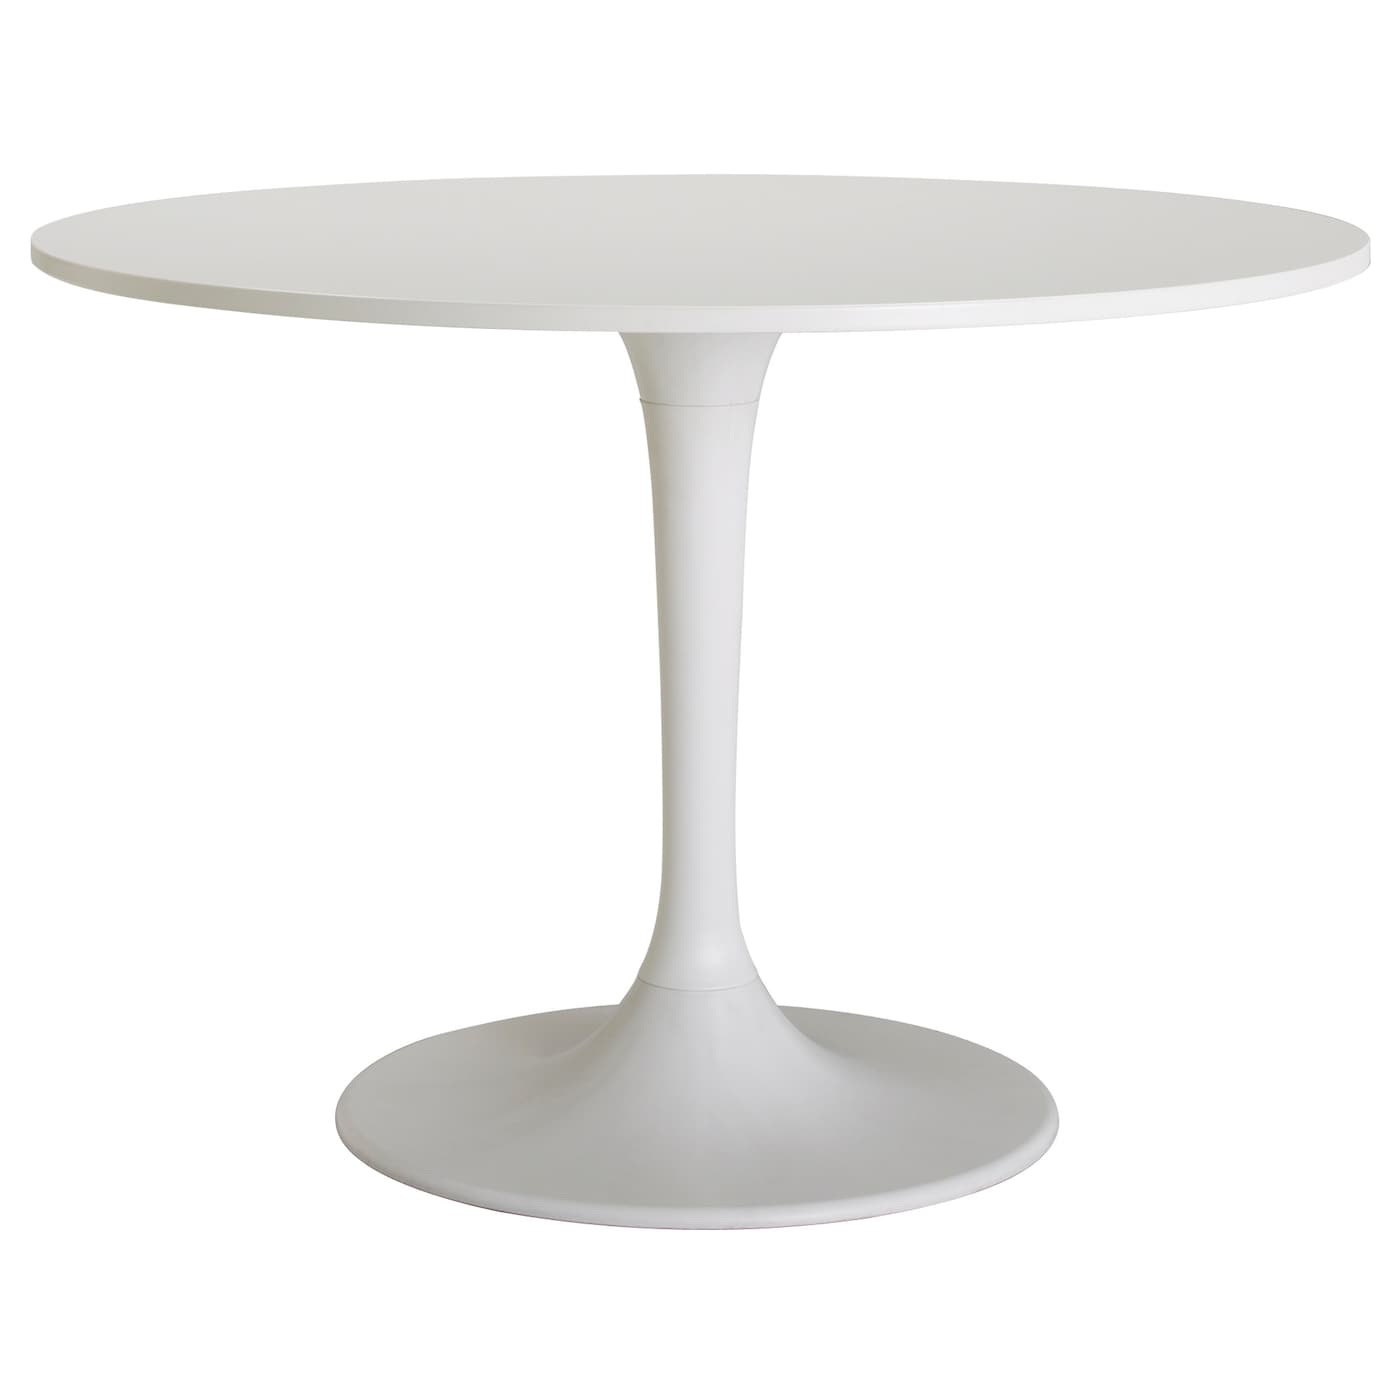 Docksta table white 105 cm ikea for Coffee tables 80cm wide